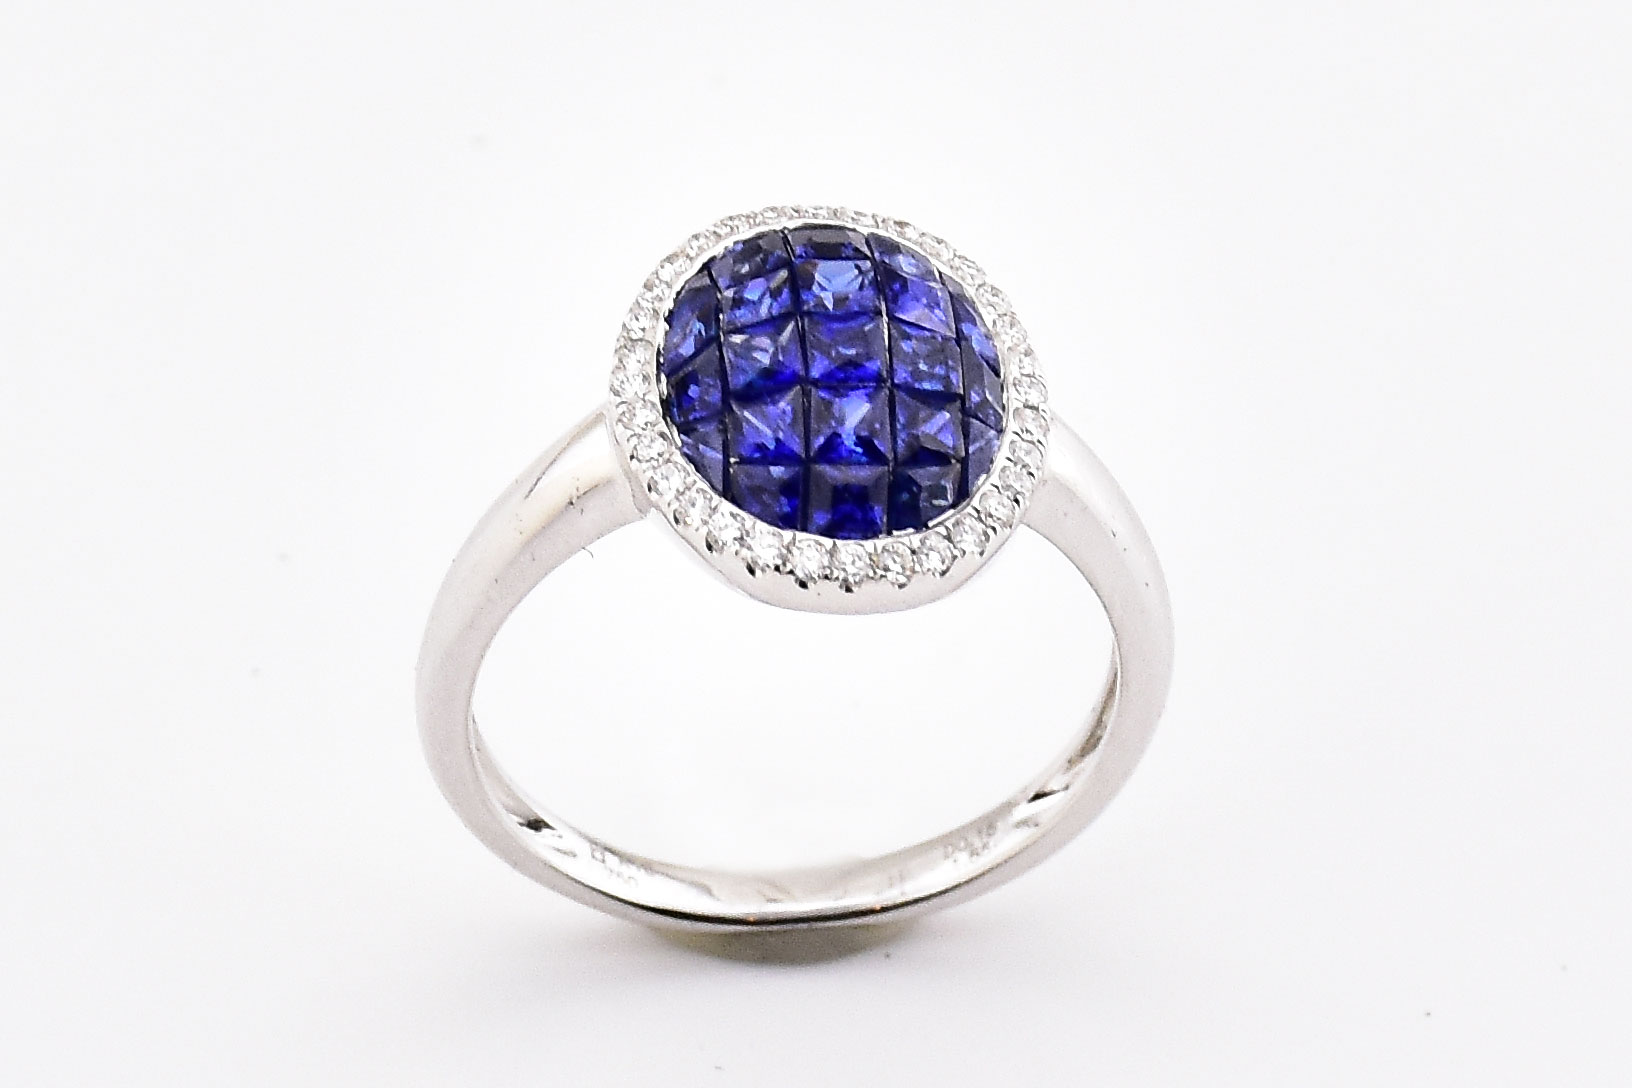 1.5 Carats Total Weight Sapphire Ring With Diamonds